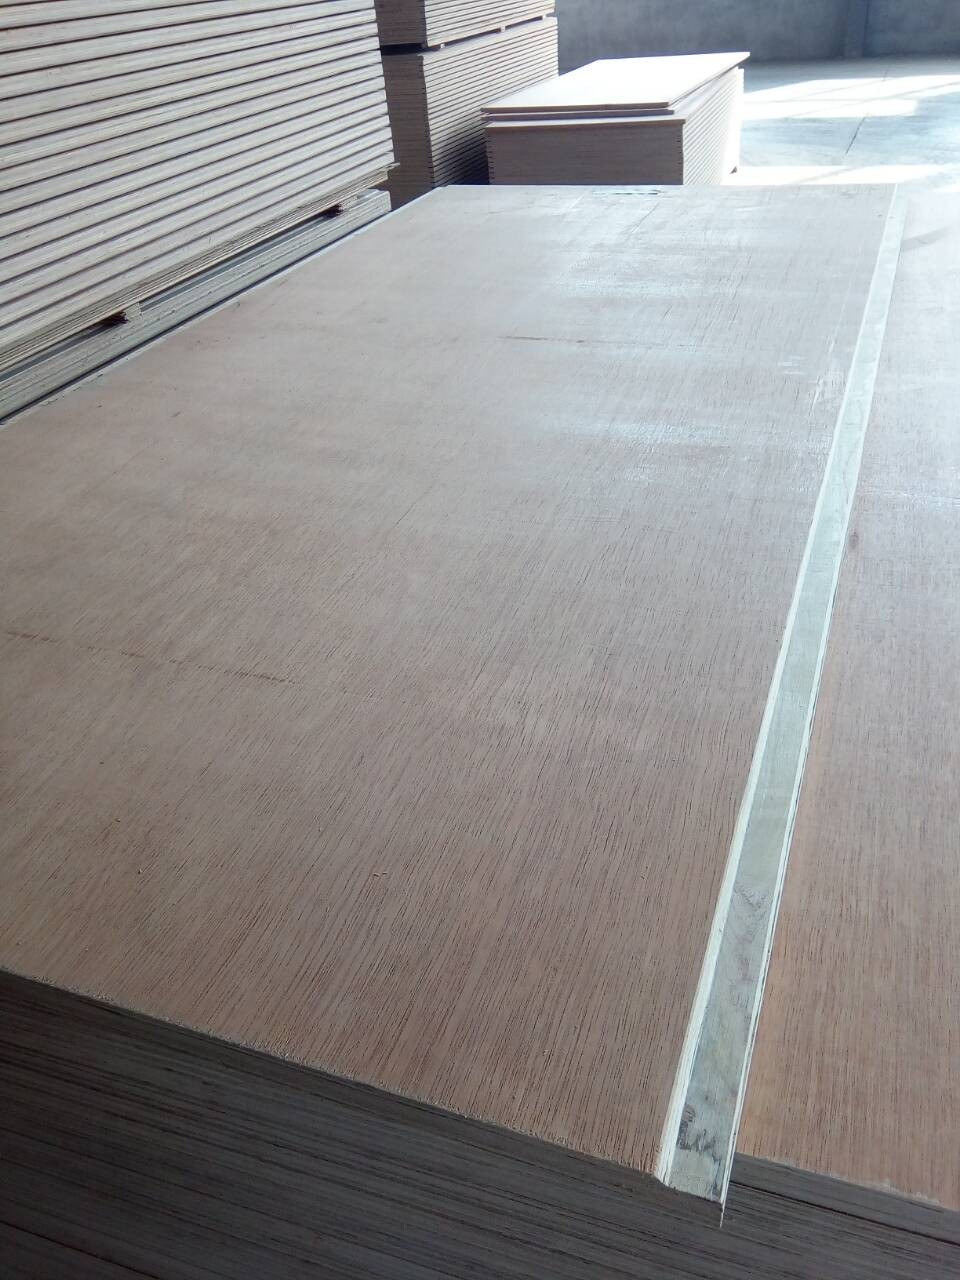 28mm container flooring plywood for chile market (Australia)